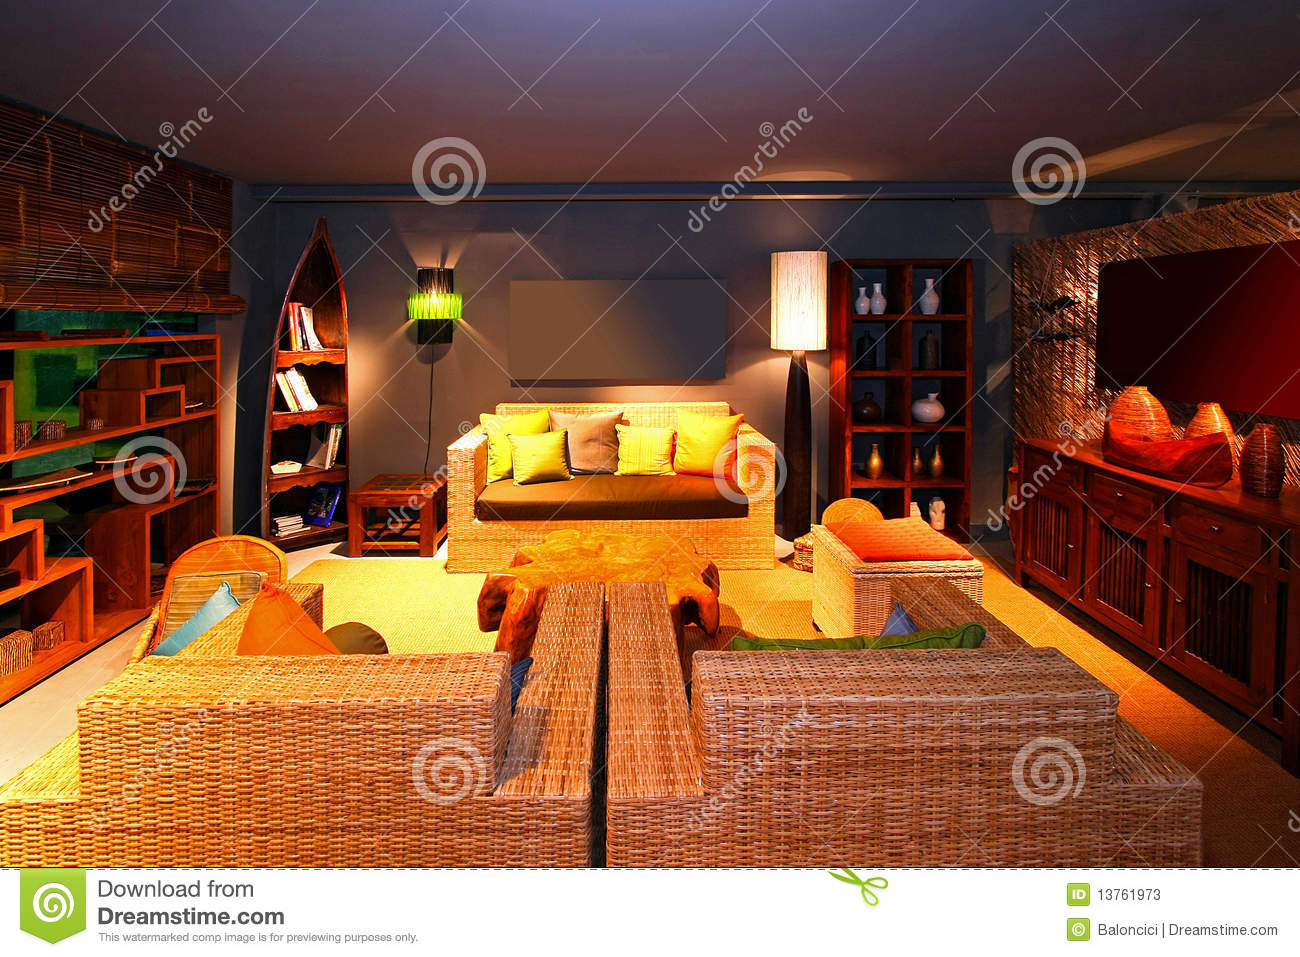 orientalisches wohnzimmer stockfotos bild 13761973. Black Bedroom Furniture Sets. Home Design Ideas